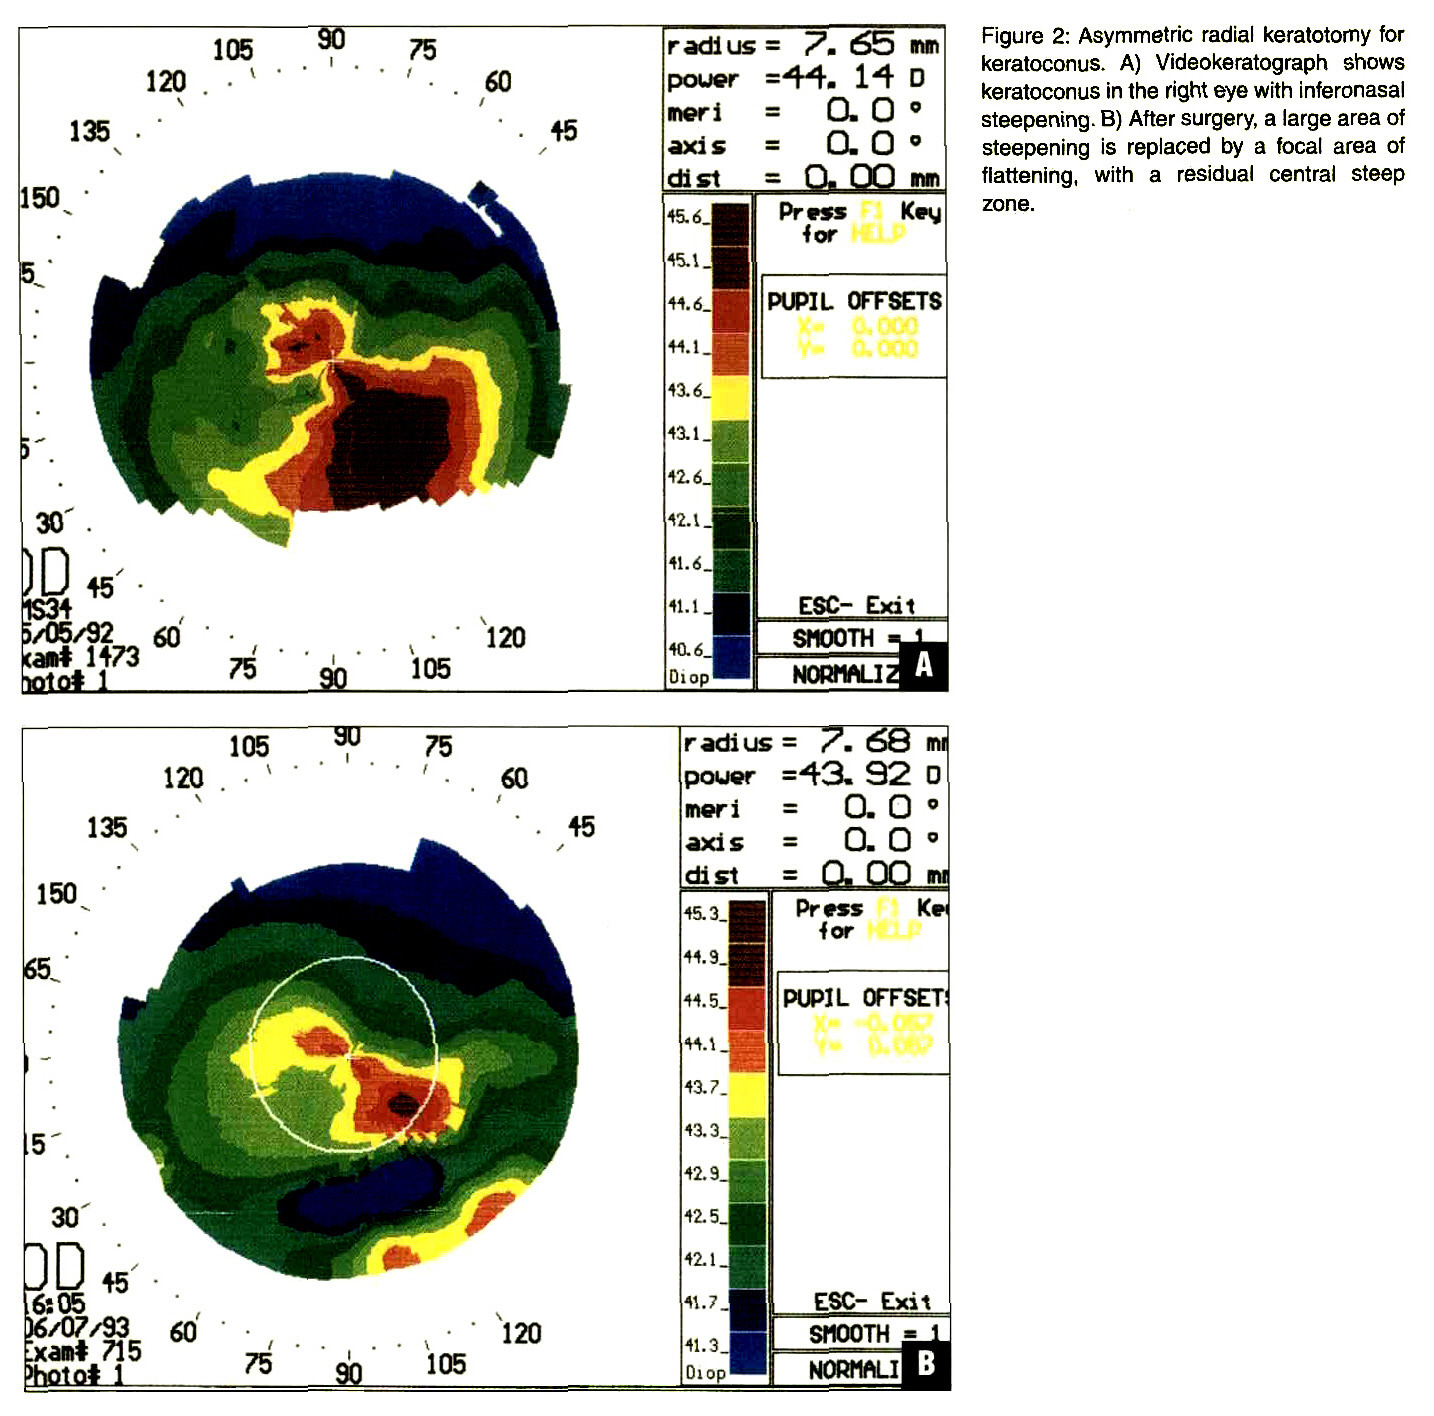 Figure 2: Asymmetric radial keratotomy for keratoconus. A) Videokeratograph shows keratoconus in the right eye with inferonasal steepening. B) After surgery, a large area of steepening is replaced by a focal area of flattening, with a residual central steep zone.